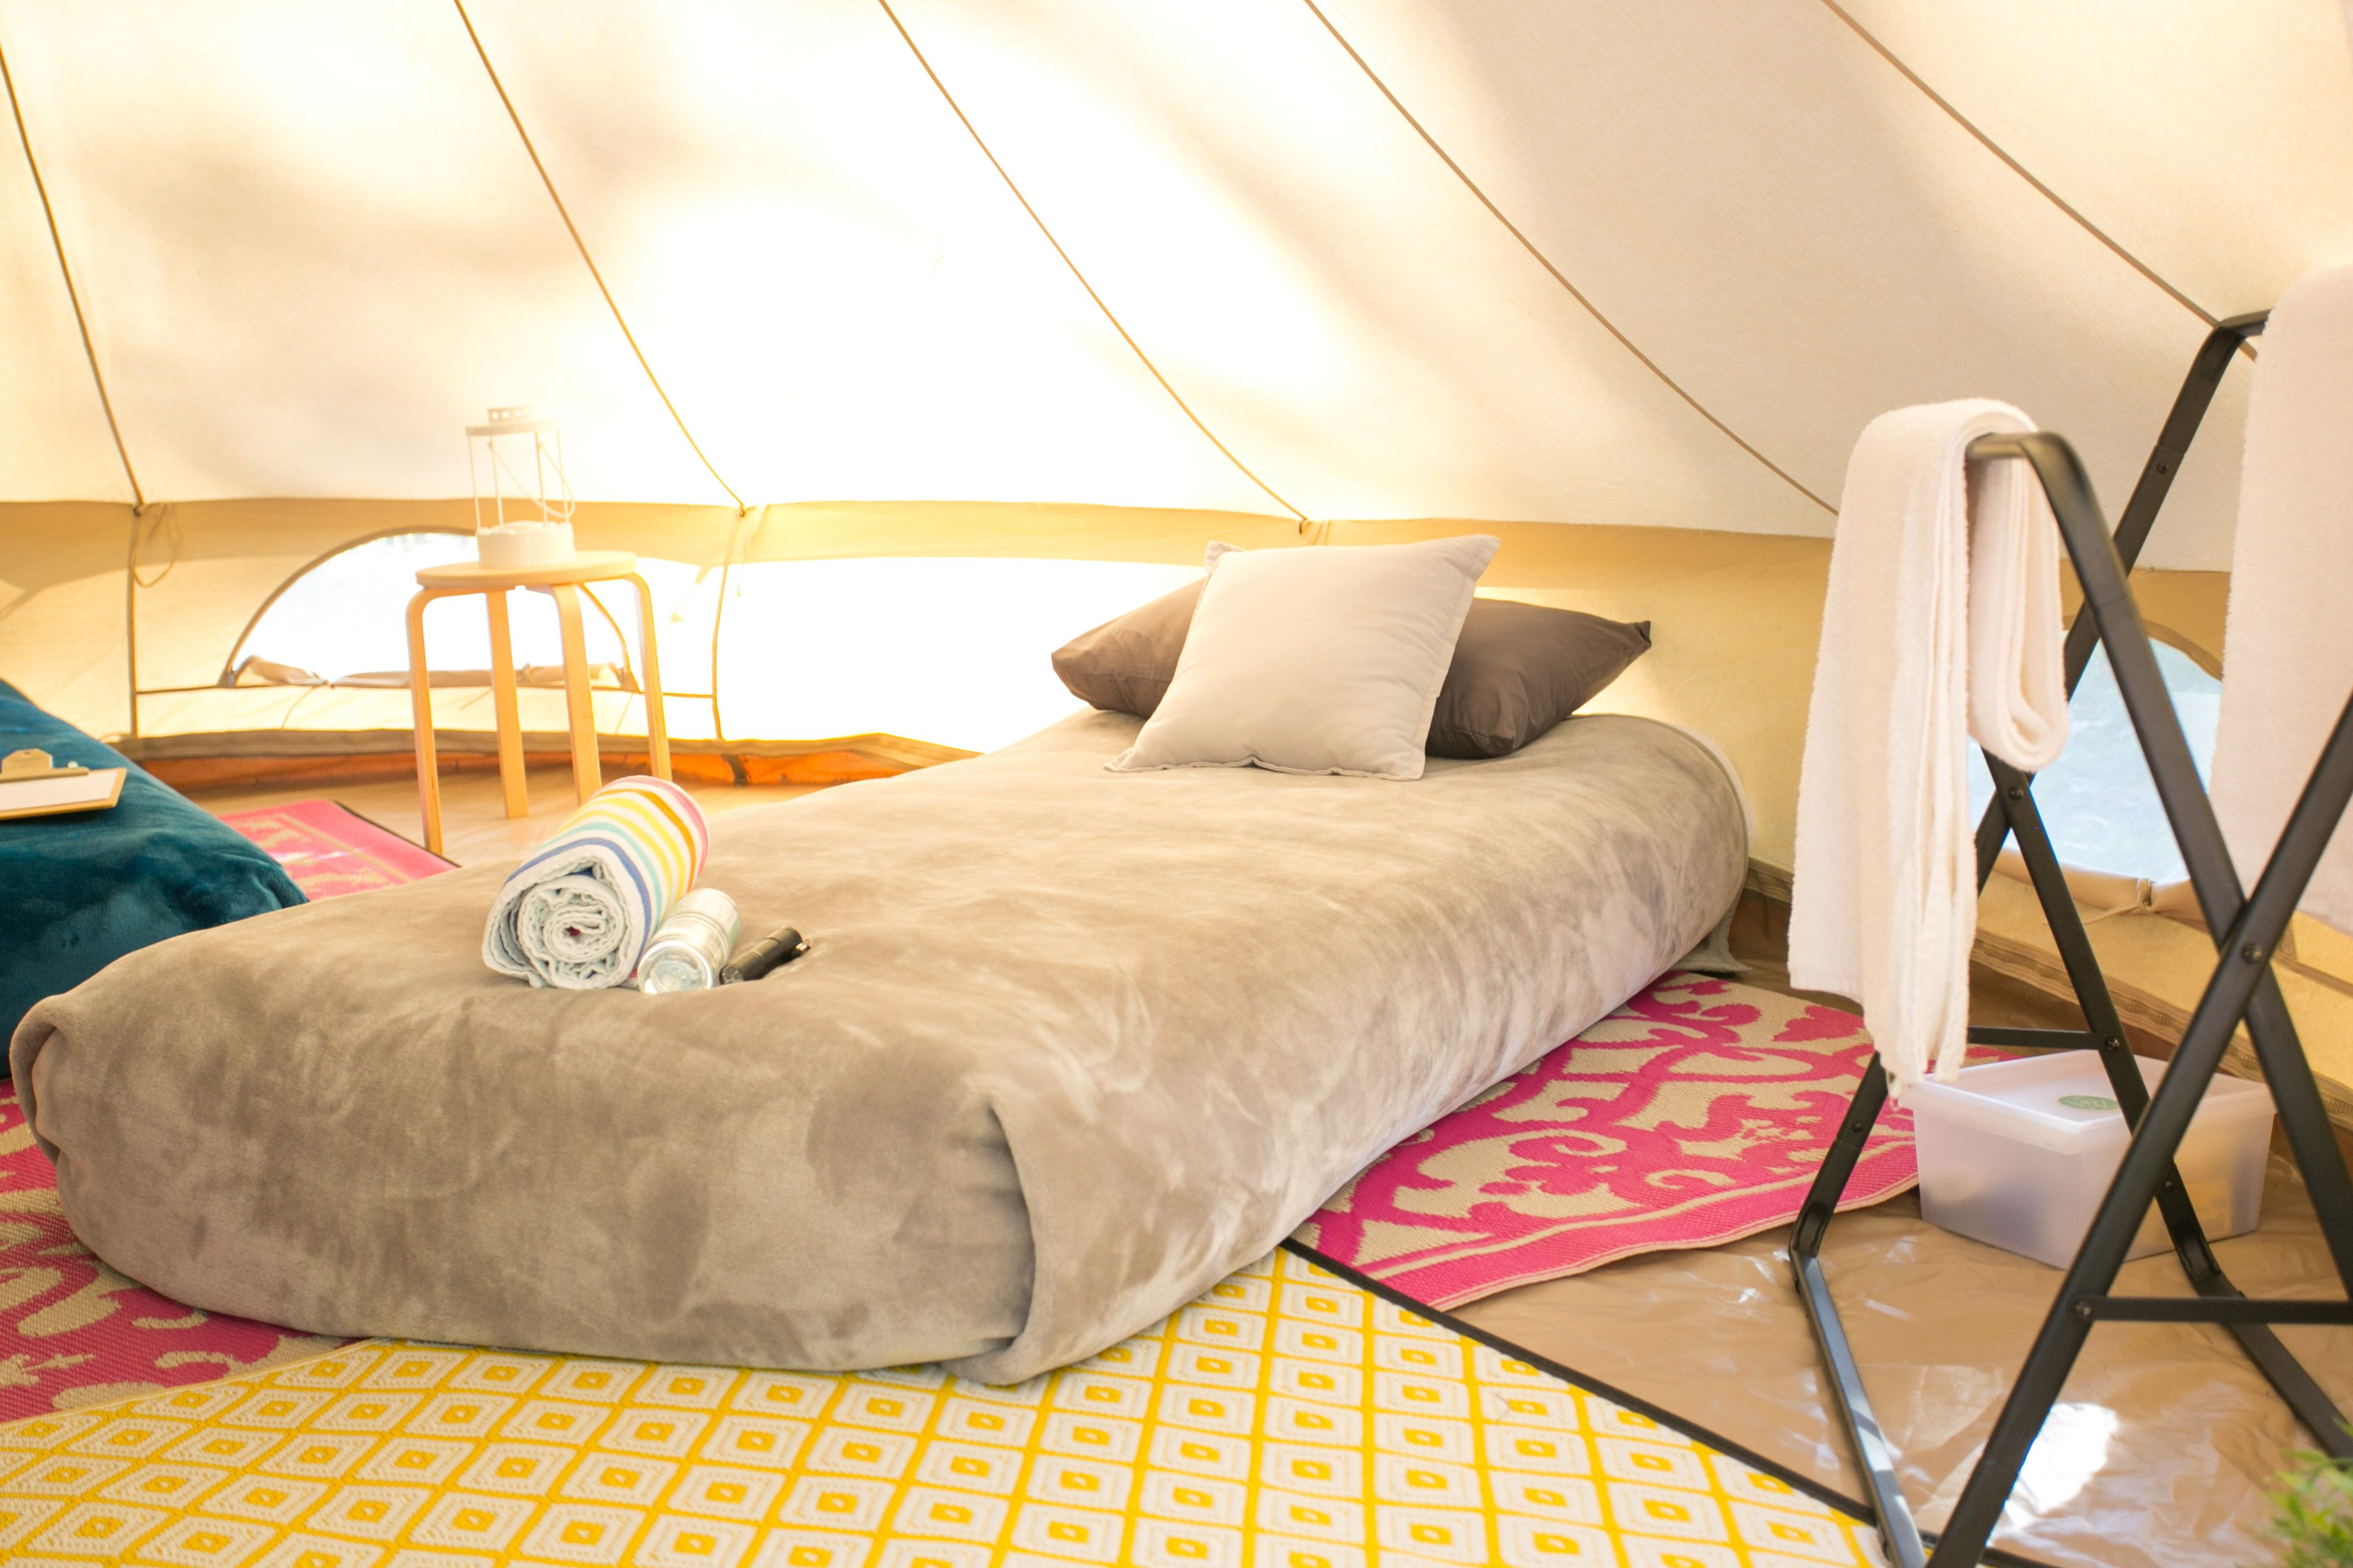 Wedding night bedroom decoration ideas  Donut just pitch a tent  Glamping will make your family holiday